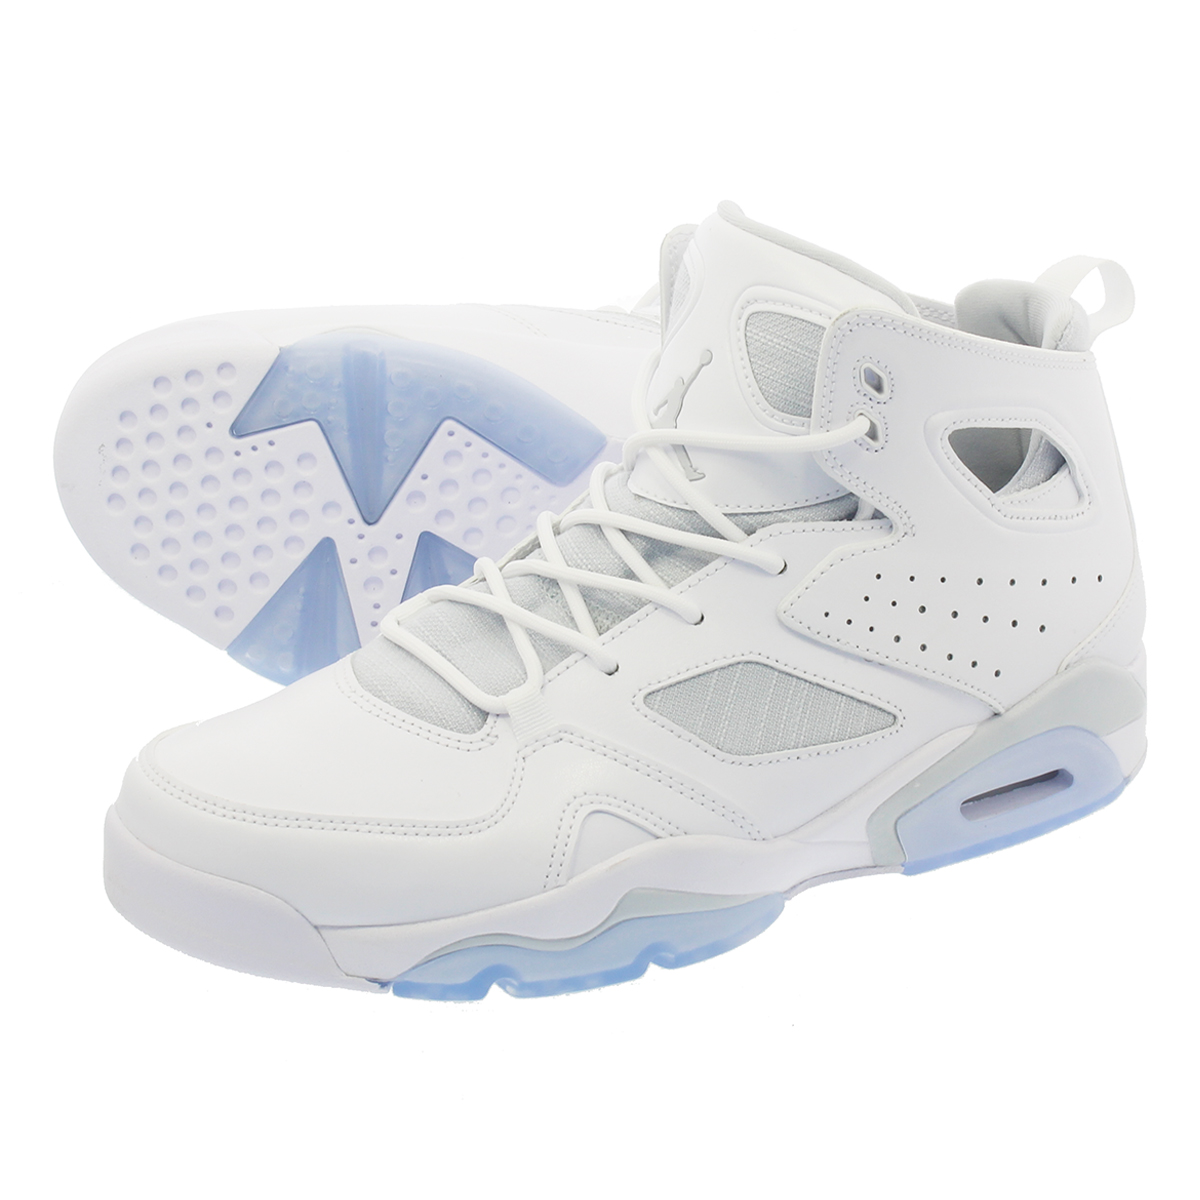 92735e3fc39b NIKE JORDAN FLIGHT CLUB 91 Nike Jordan flight club 91 WHITE PURE PLATINUM  555